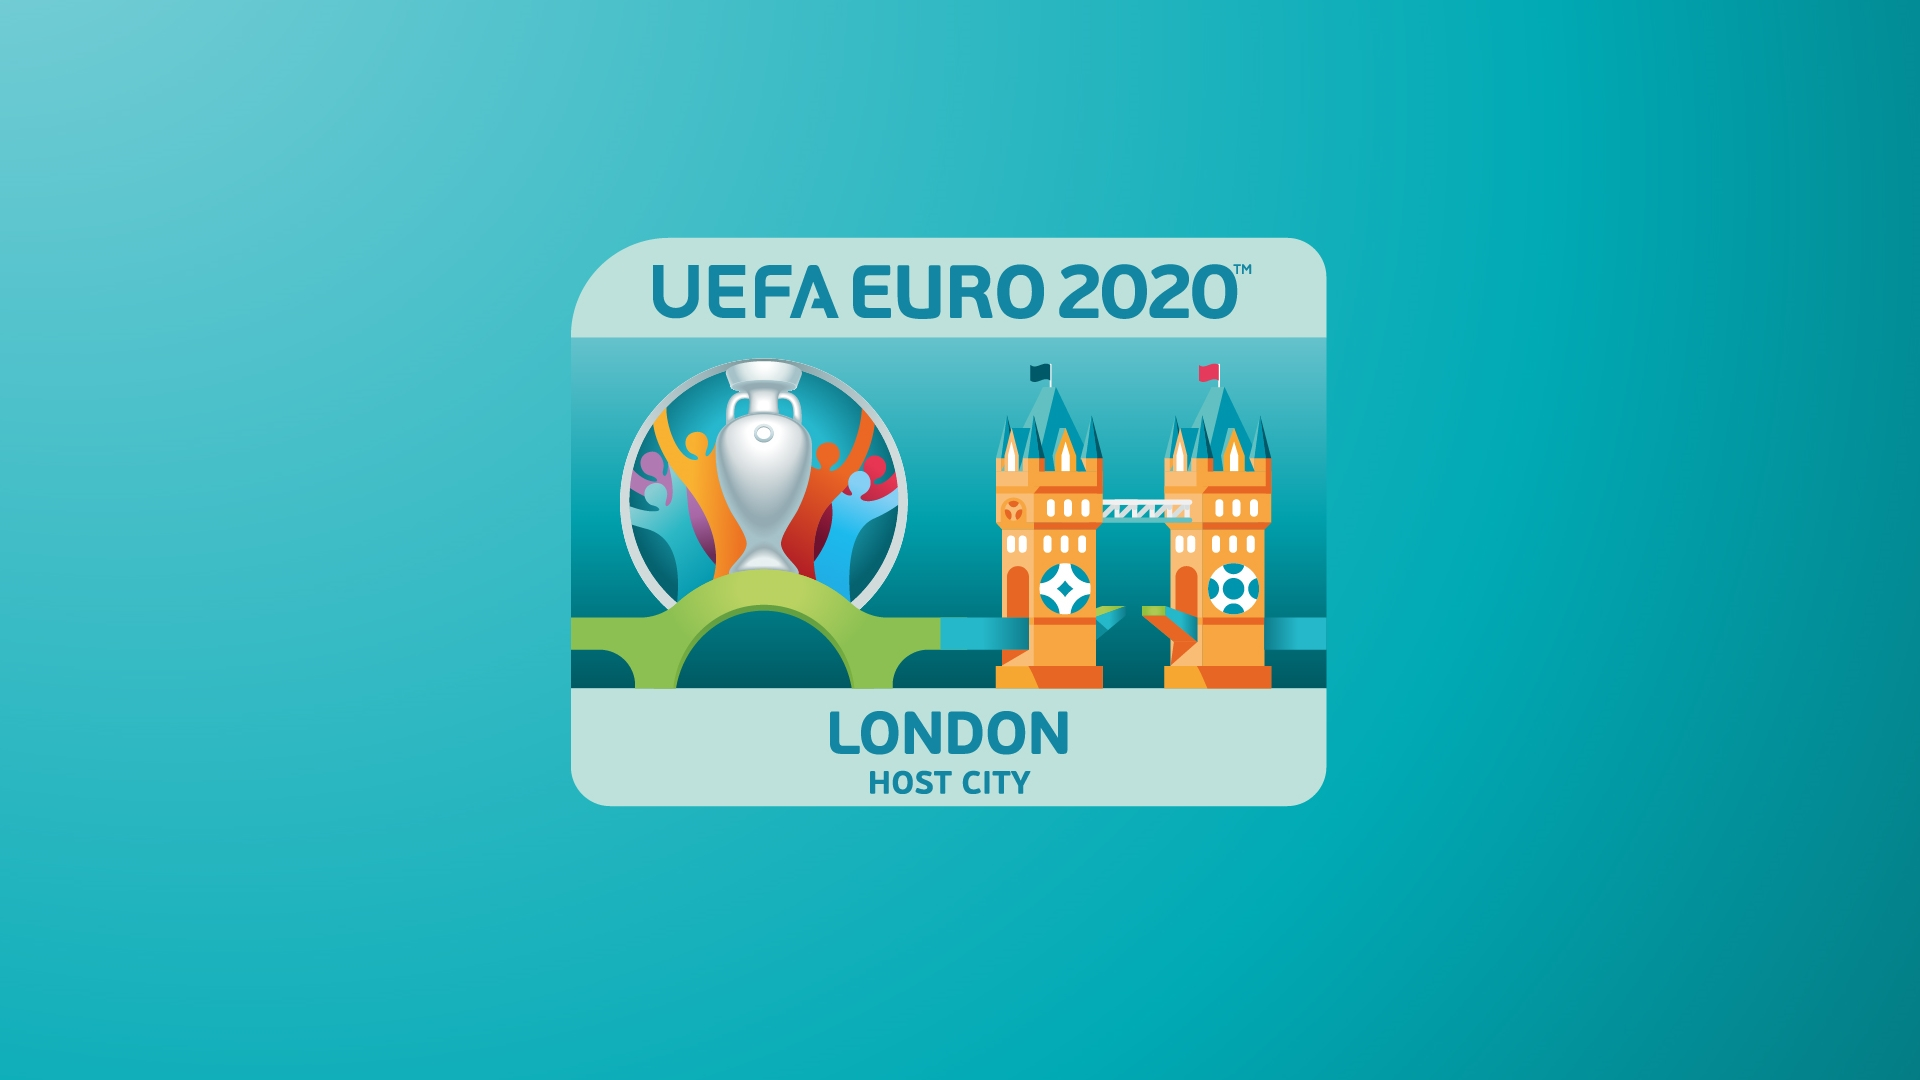 Euro 2020: Wembley to host final and semi-finals - BBC Sport